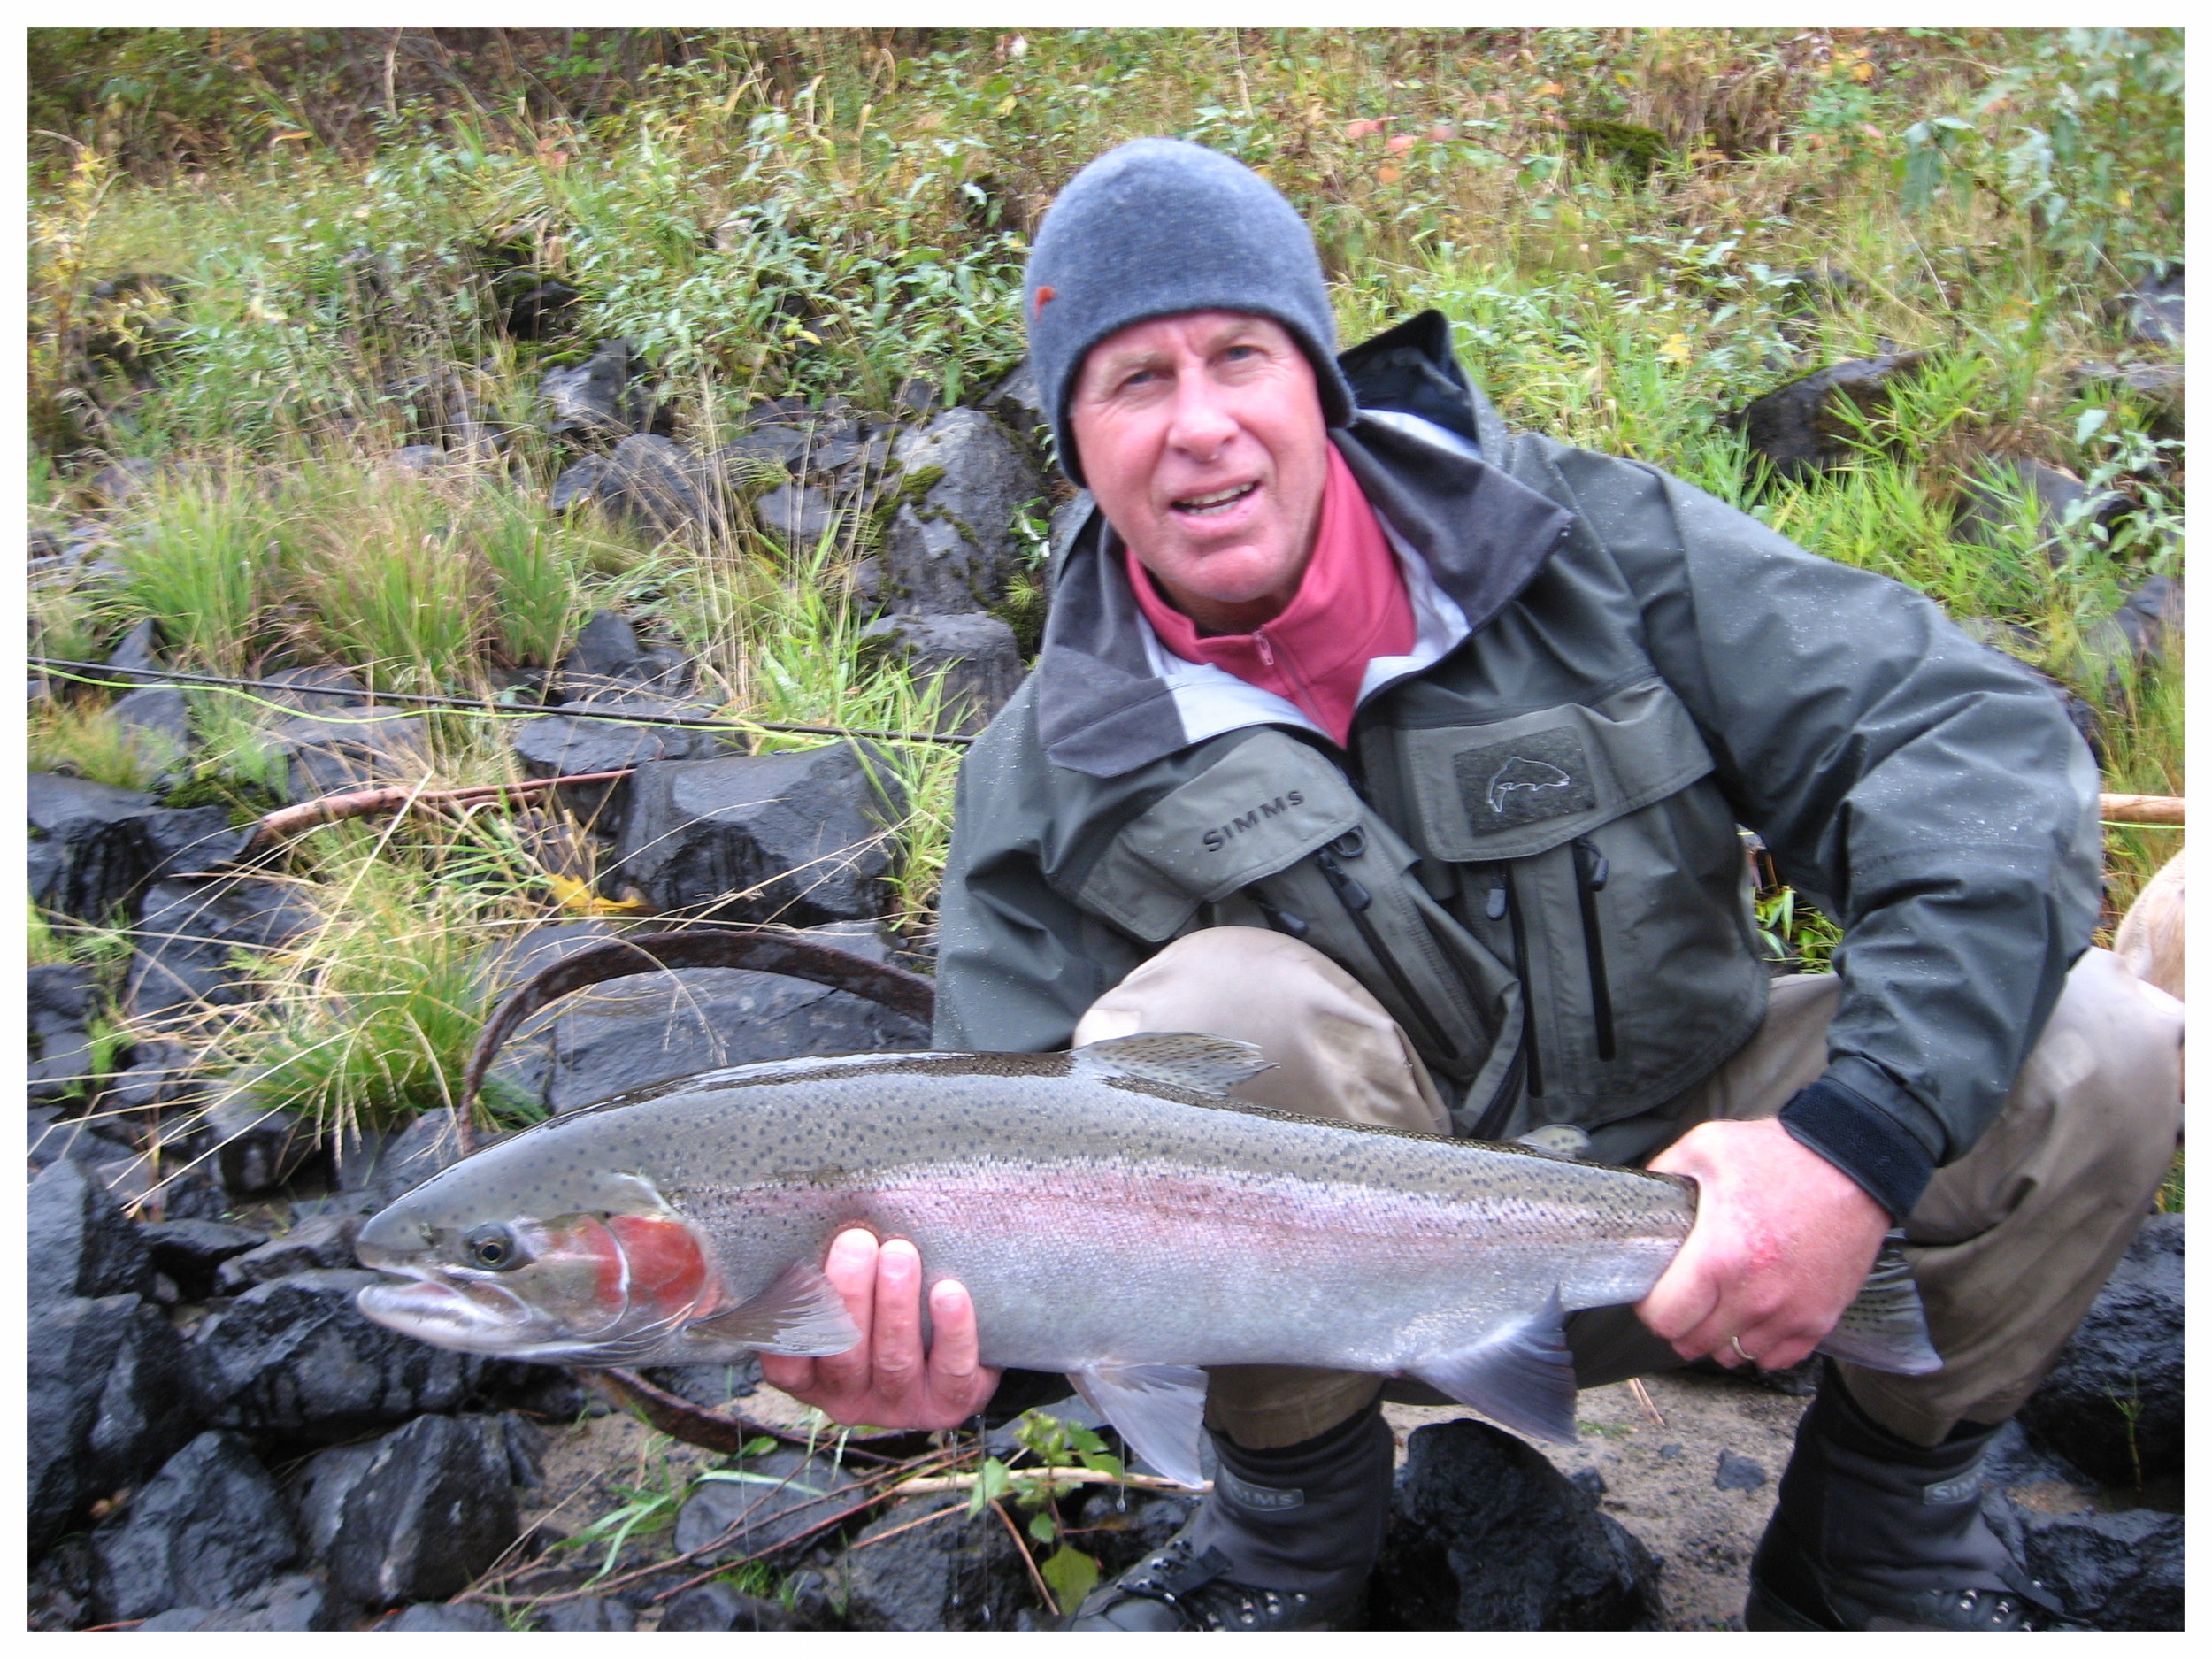 Early season steelhead fishing